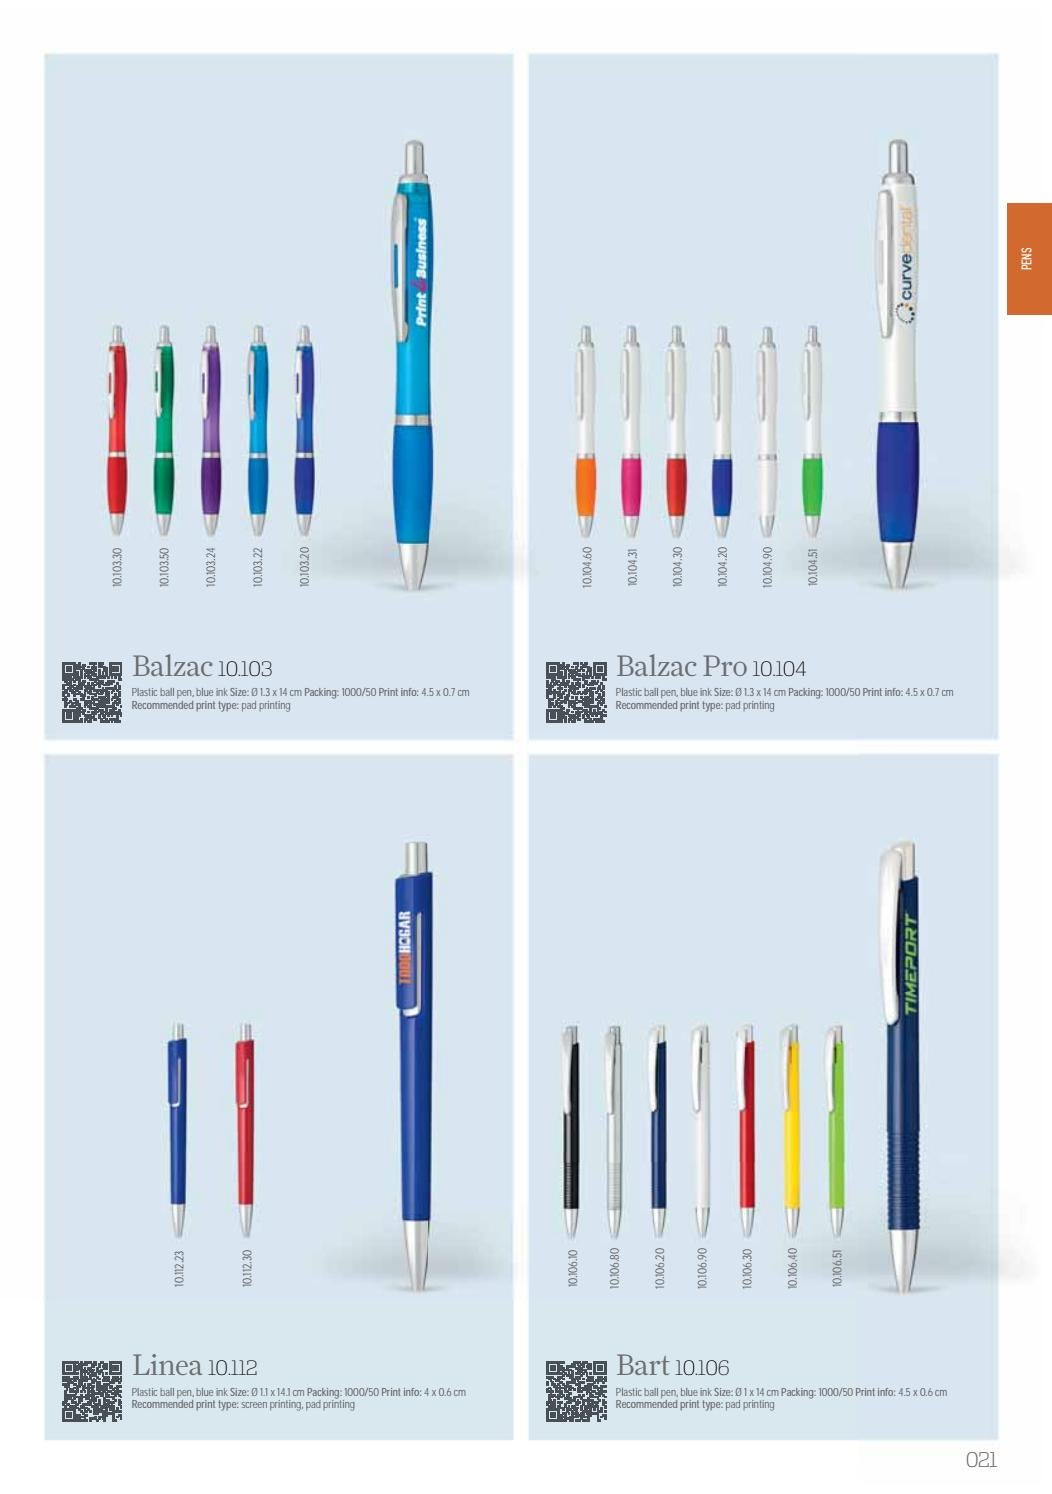 Office Plus Promo Catalogue 2016/2017 by Office Plus - issuu